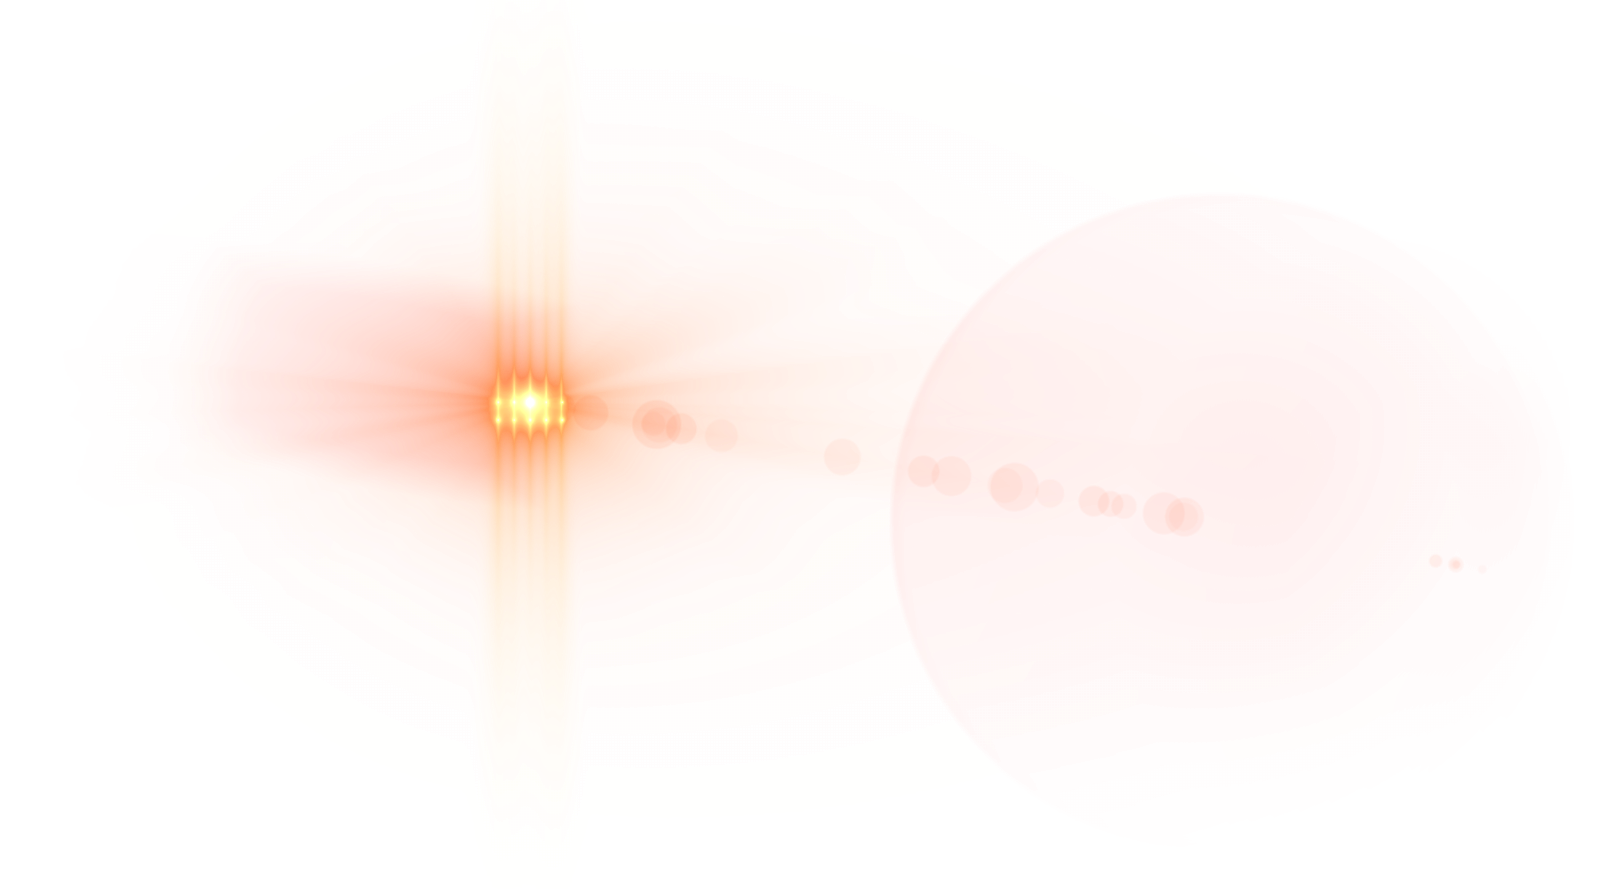 Orange Flare Png - Orange Lens Flare PNG File #46206 - Free Icons and PNG Backgrounds